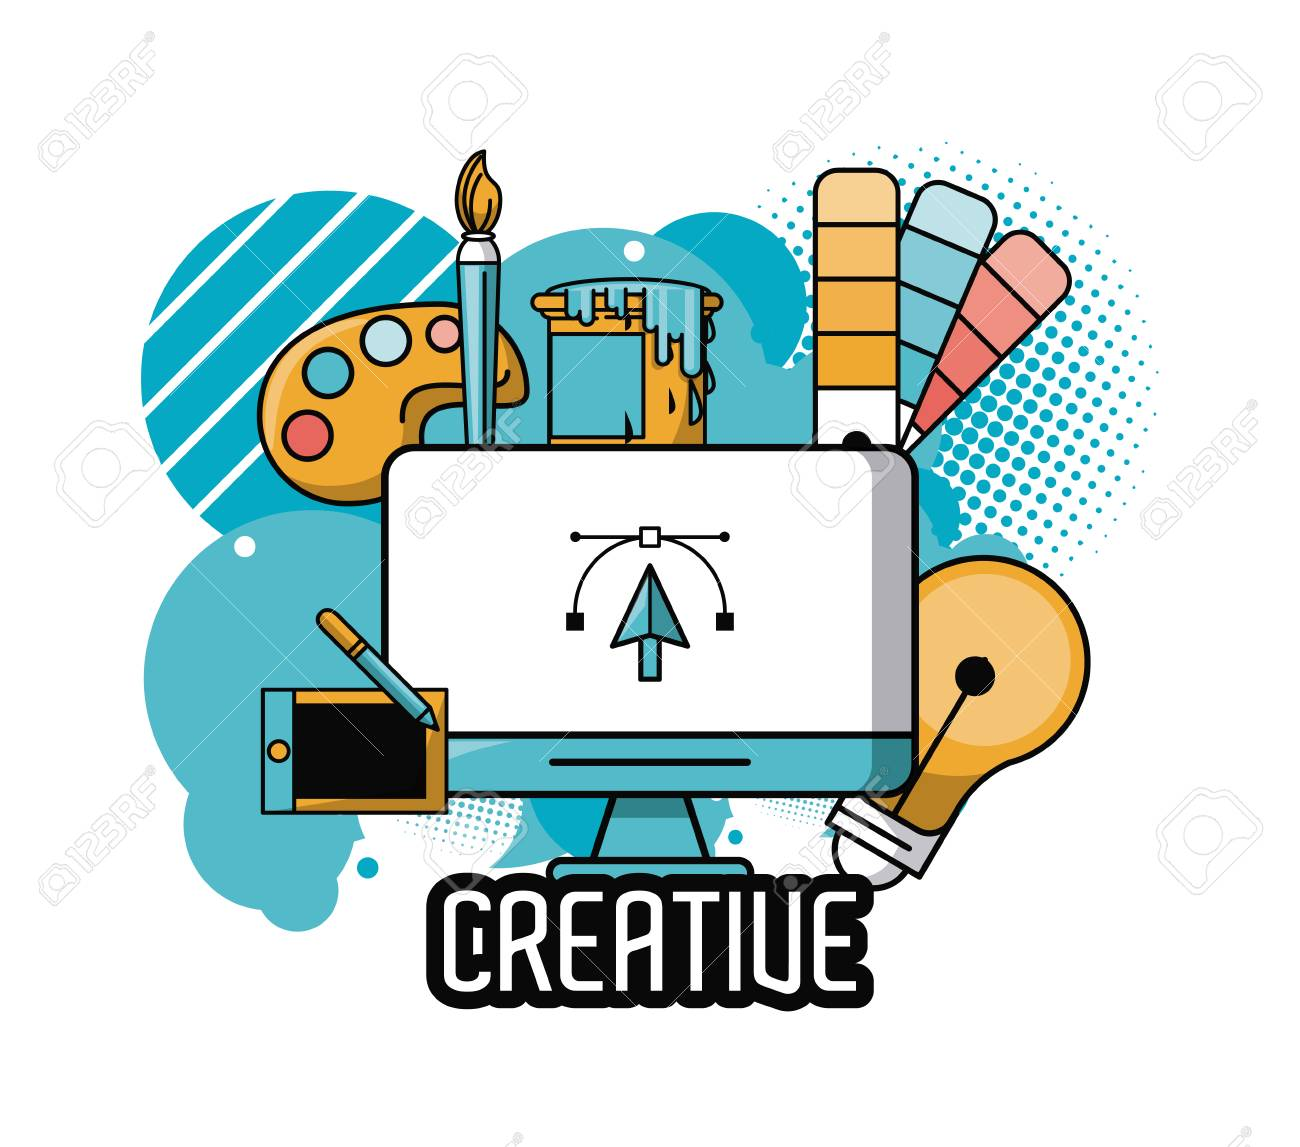 creative ideas and colors with graphic design elements cartoons